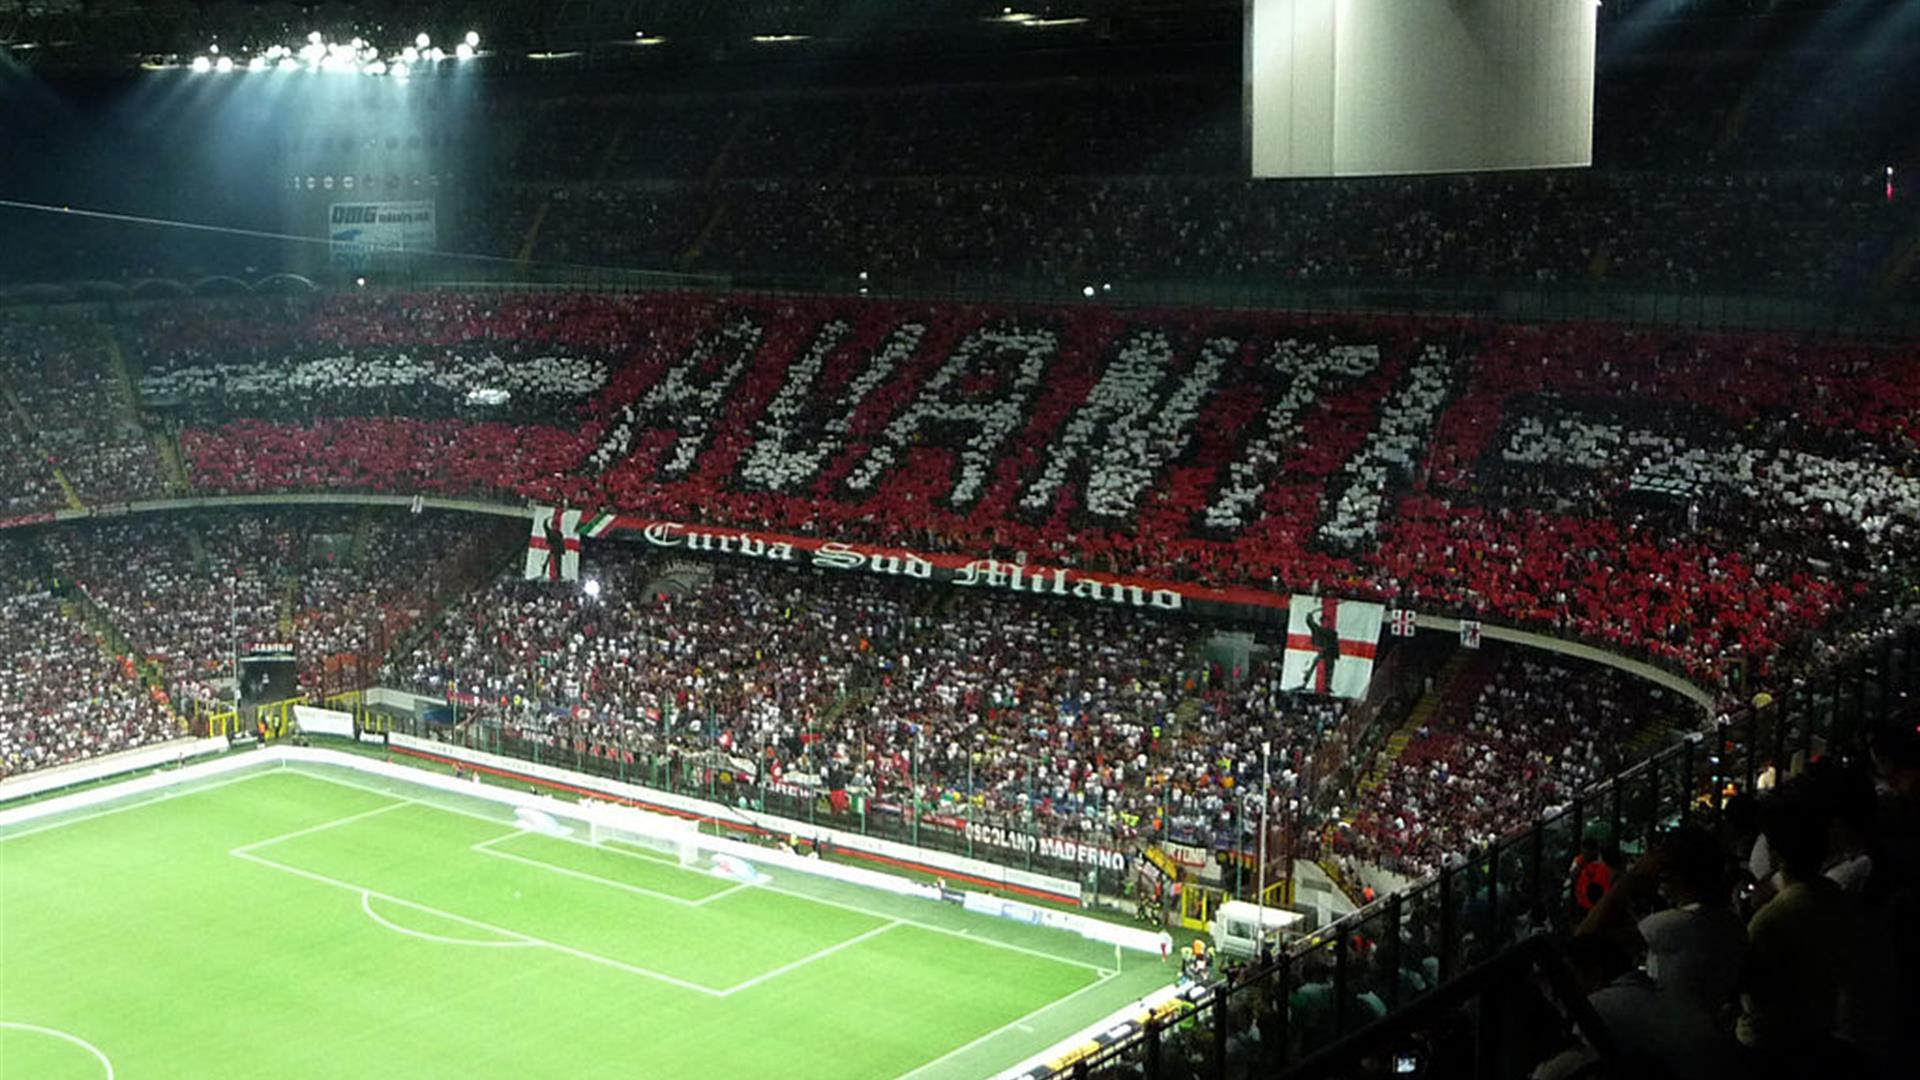 Derby AC Milan Vs Inter At San Siro Flickr